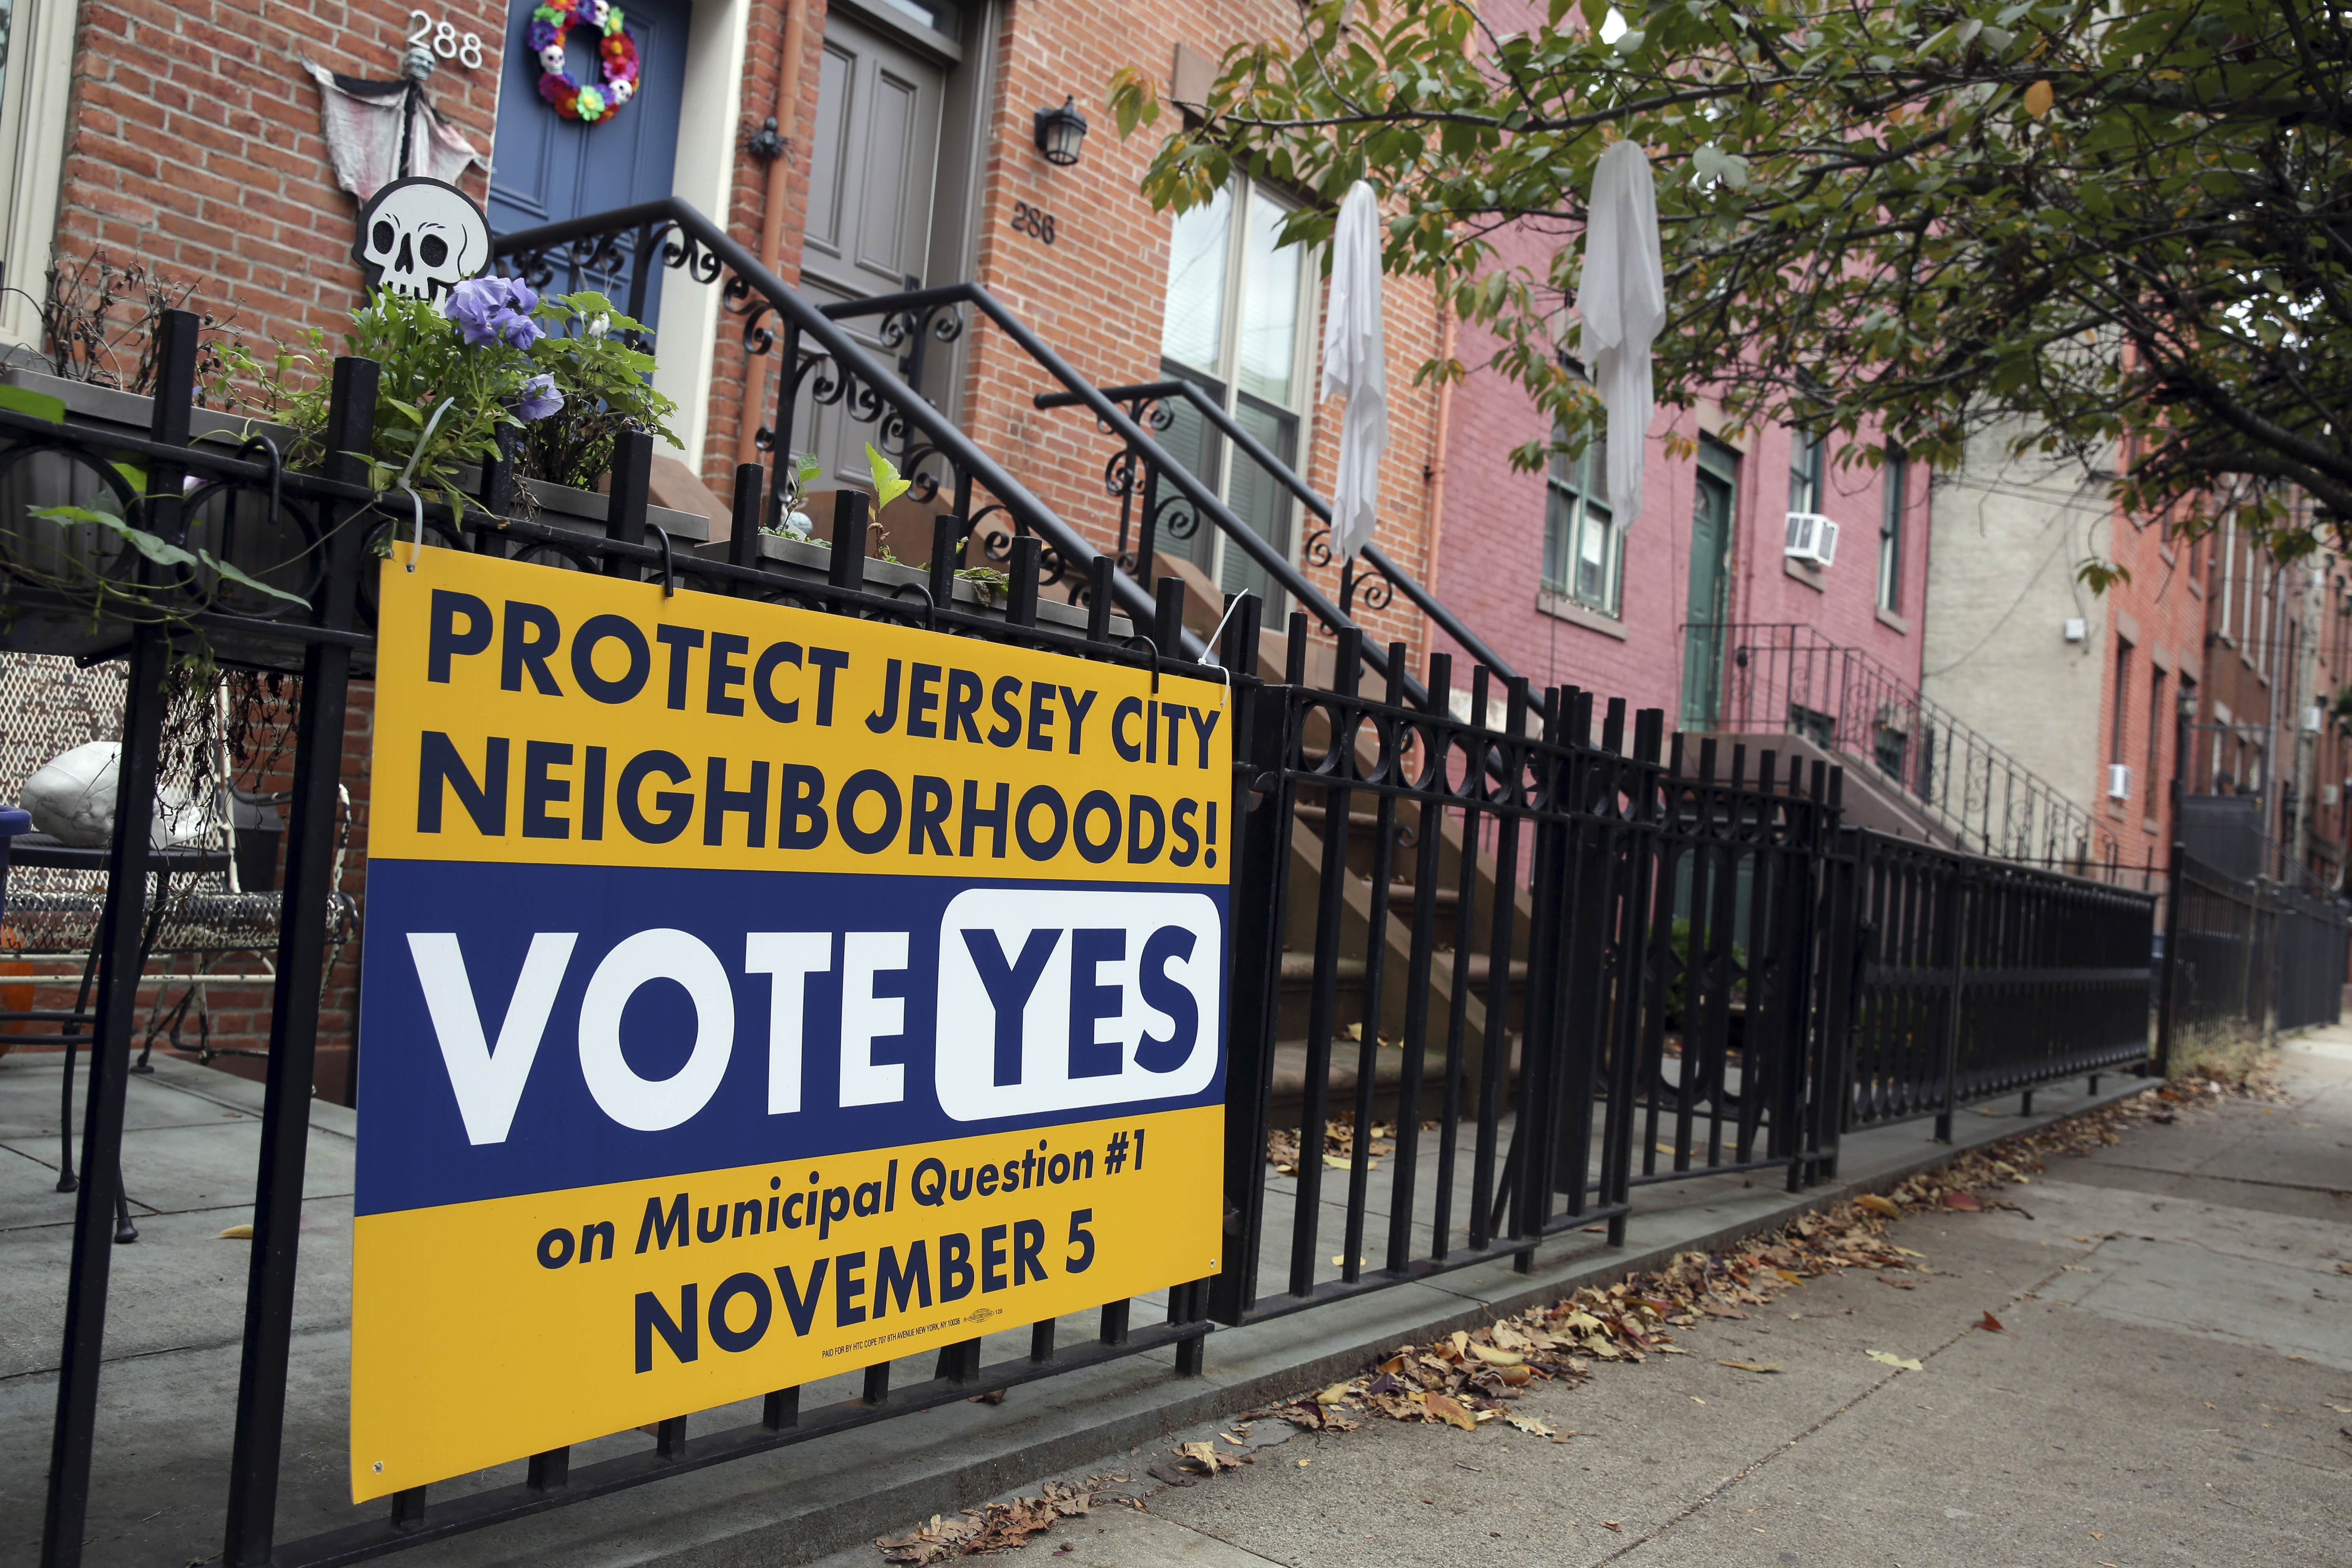 A sign urging people to vote on municipal question #1 is displayed in Jersey City, N.J., Tuesday, Nov. 5, 2019. Residents of New Jersey's second-largest city will decide Tuesday whether its increasing popularity as an affordable short-term rental option across the river from New York City has reached the point where restrictions are needed to rein in some of the unwanted byproducts.(AP Photo/Seth Wenig)